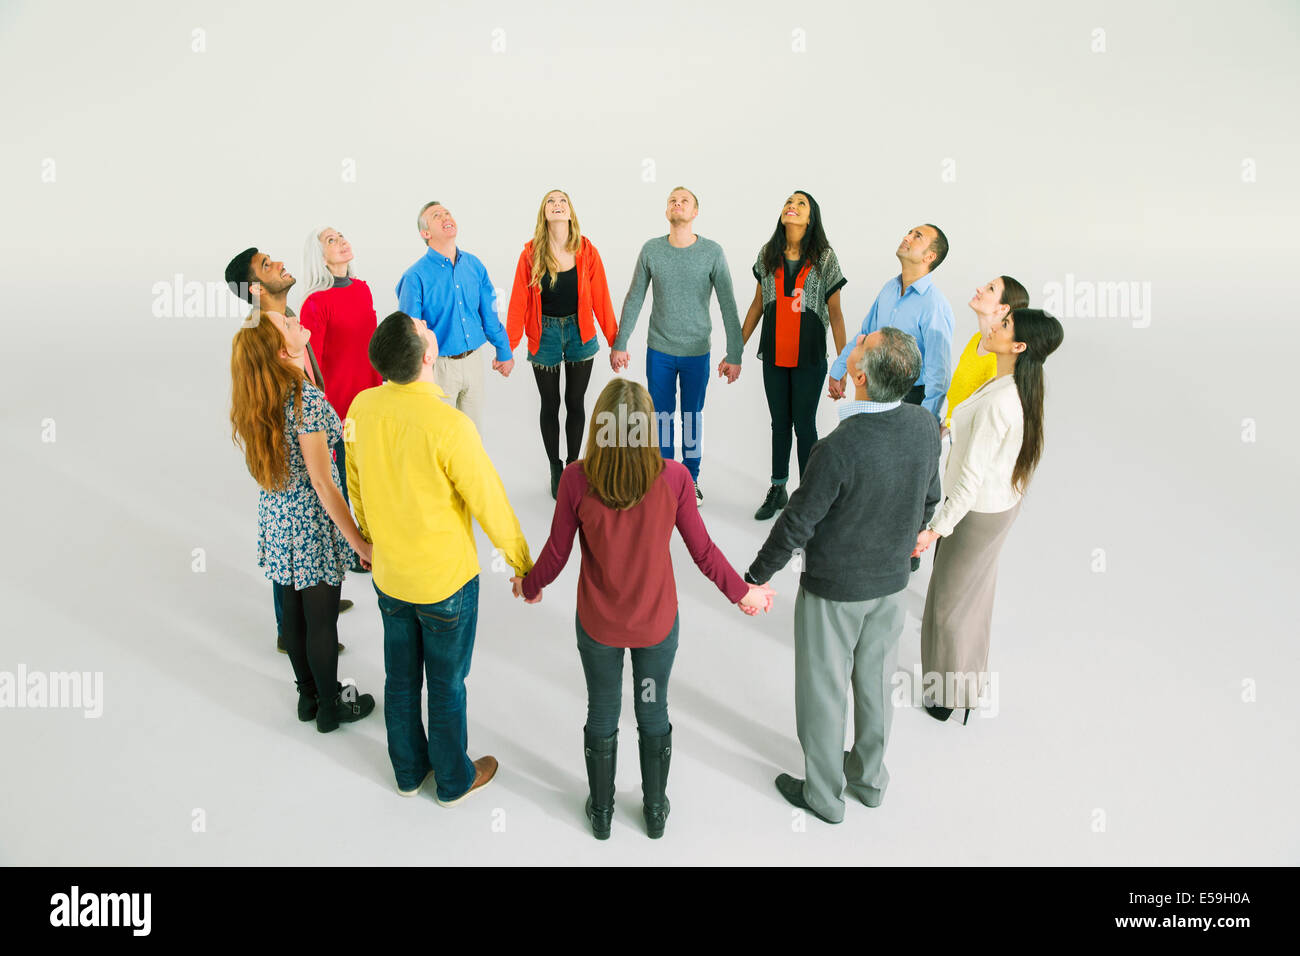 Business people holding hands in circle Photo Stock